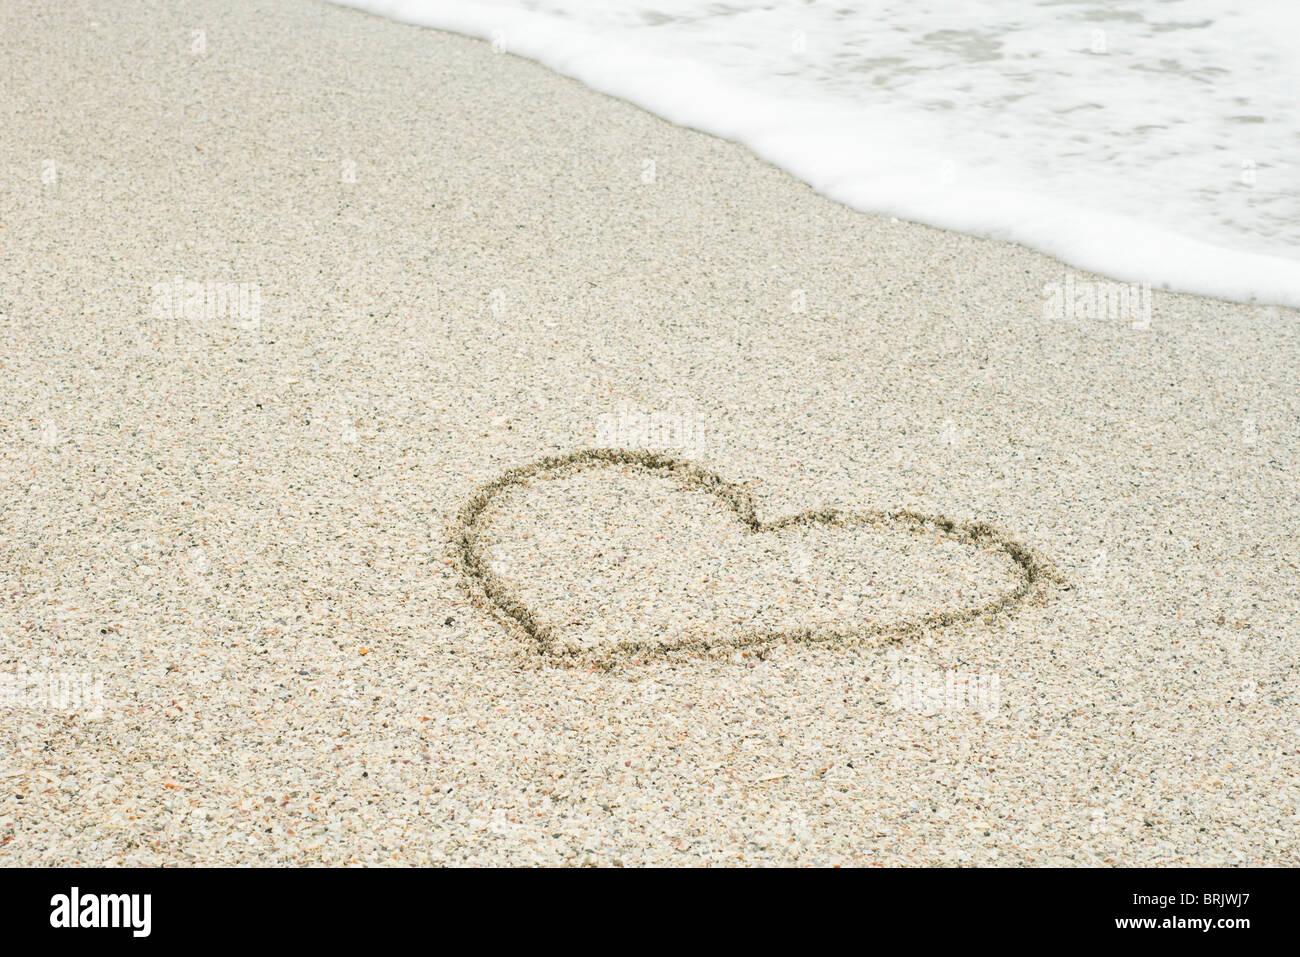 Heart drawn in sand at the beach - Stock Image